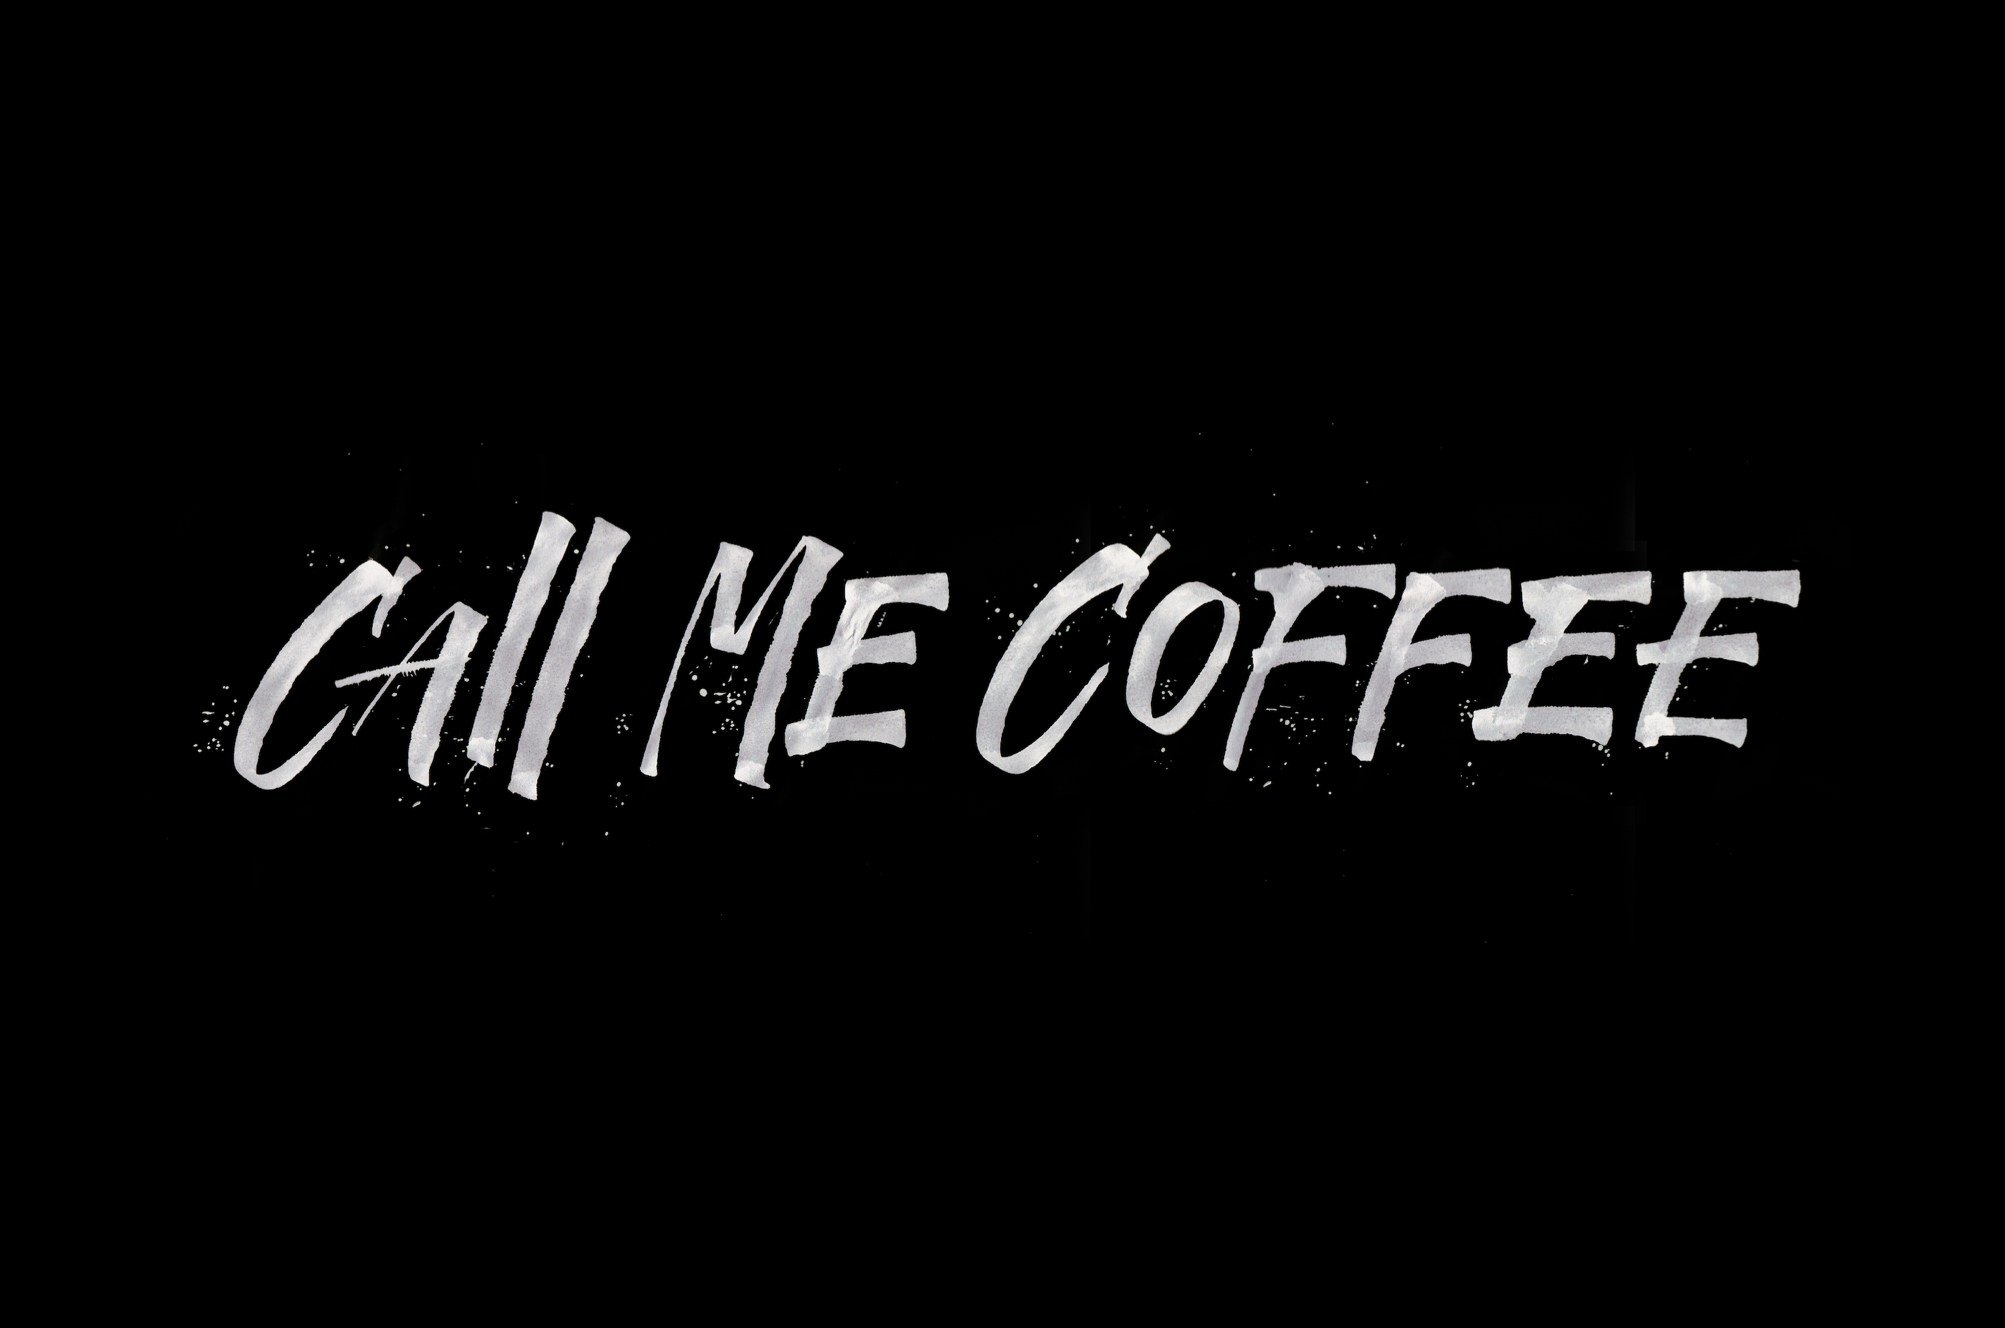 callmecoffee